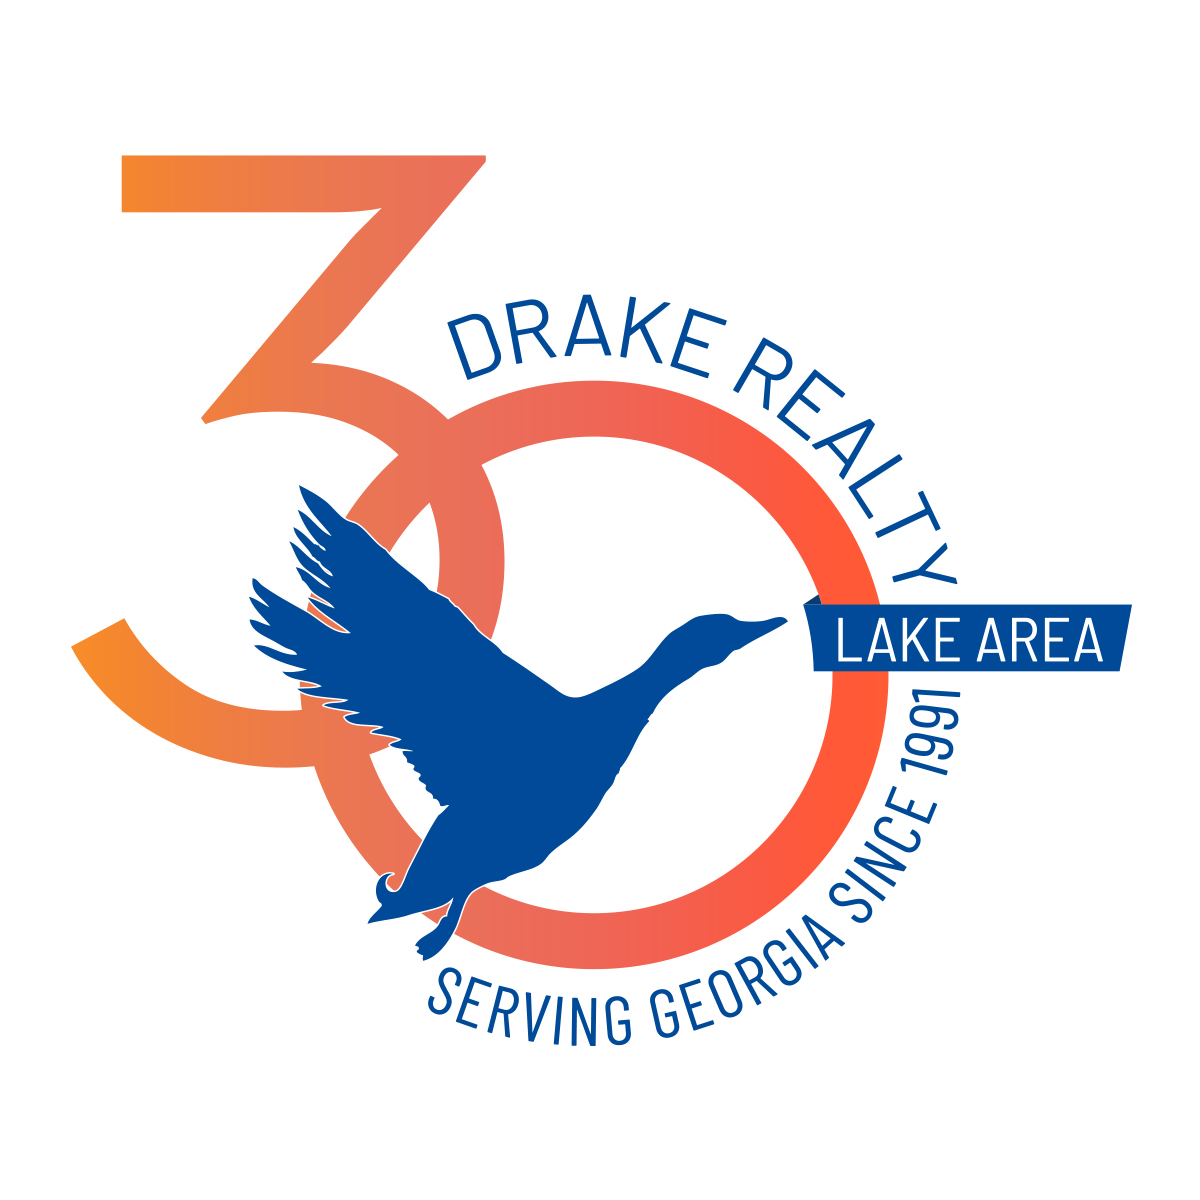 Drake Realty Lake Area Logo